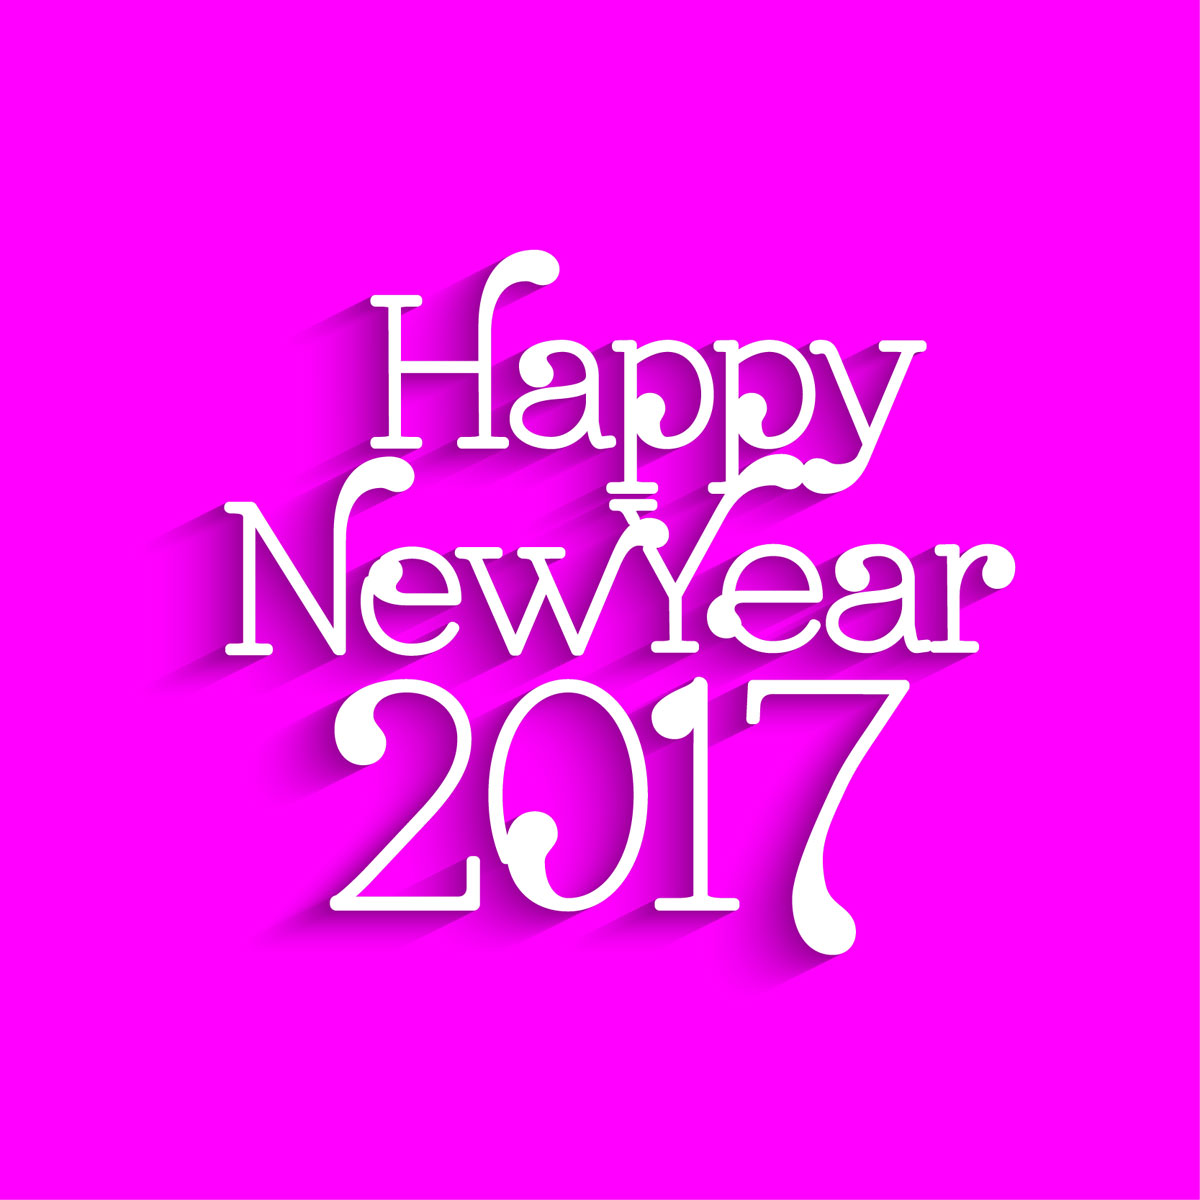 Happy New Year 2017 Greetings Pictures